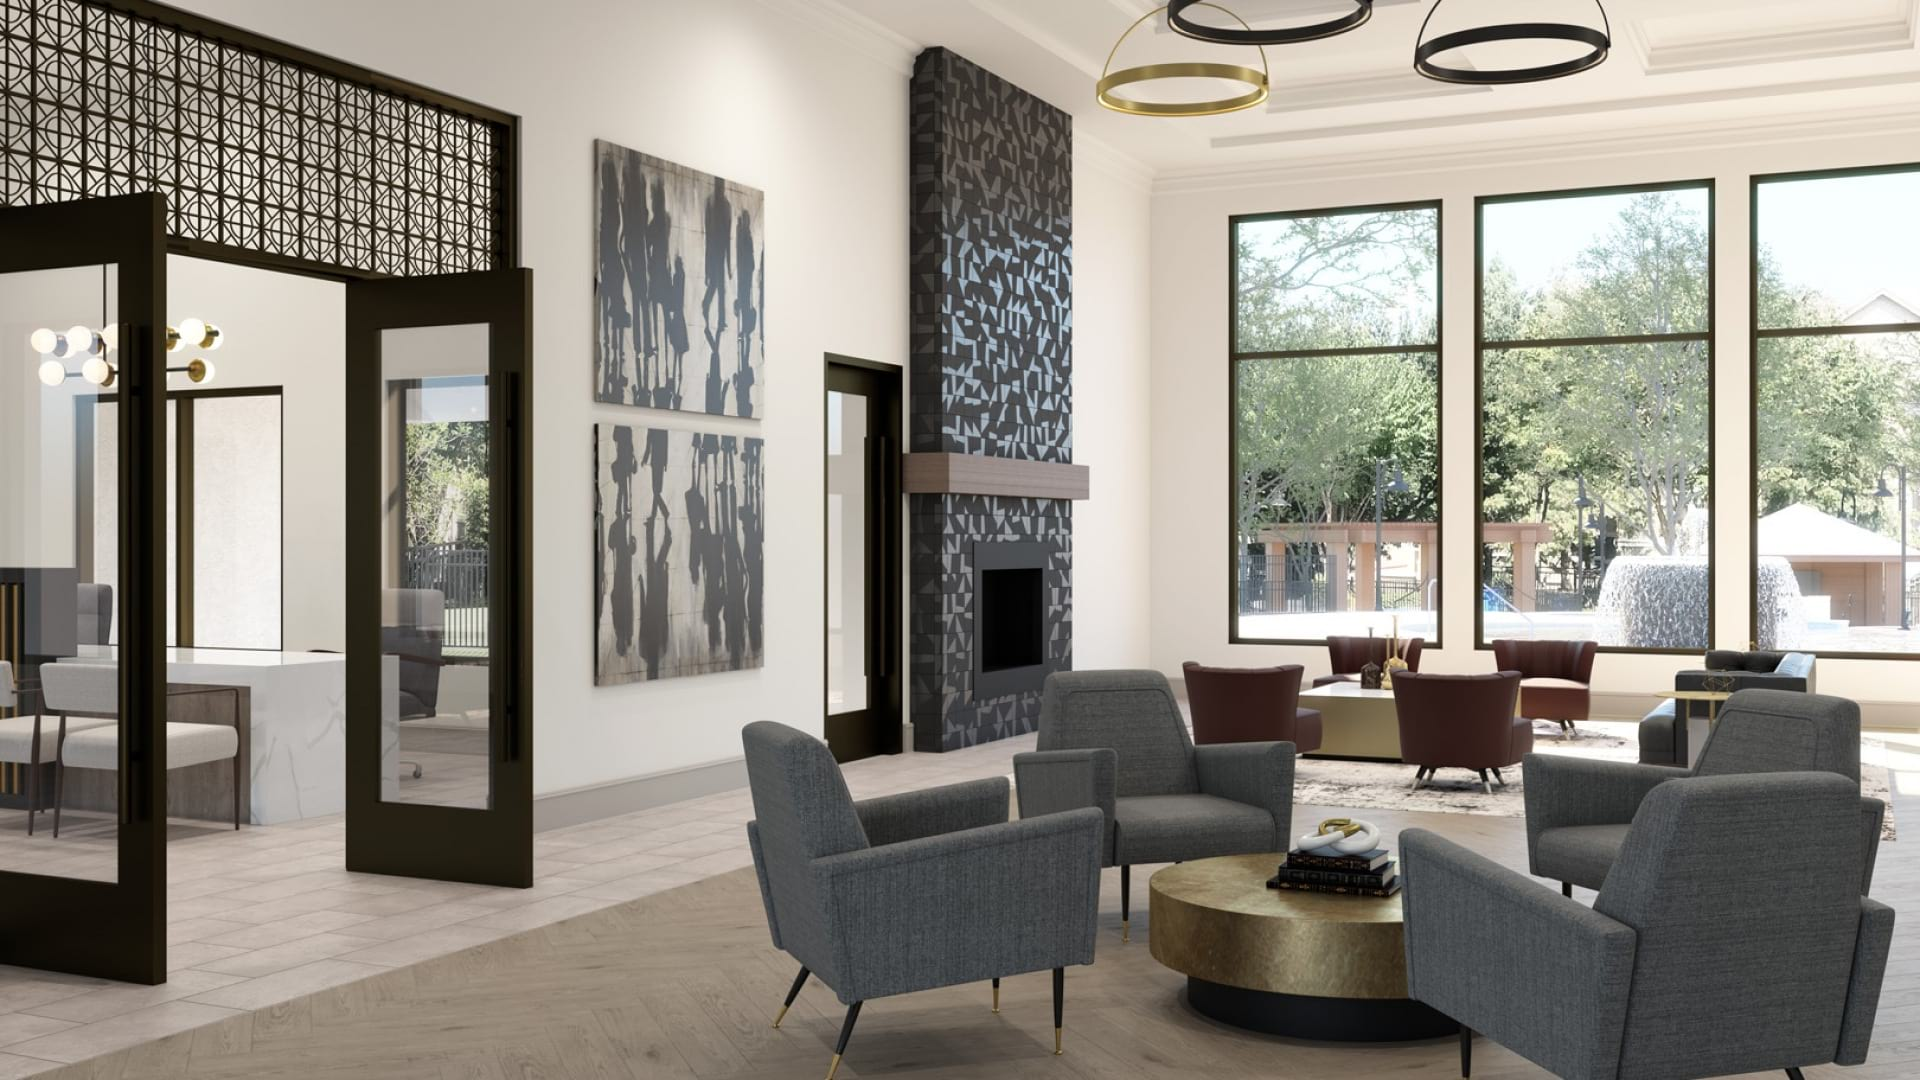 Cortland Bear Creek resident clubhouse with modern seating and decor